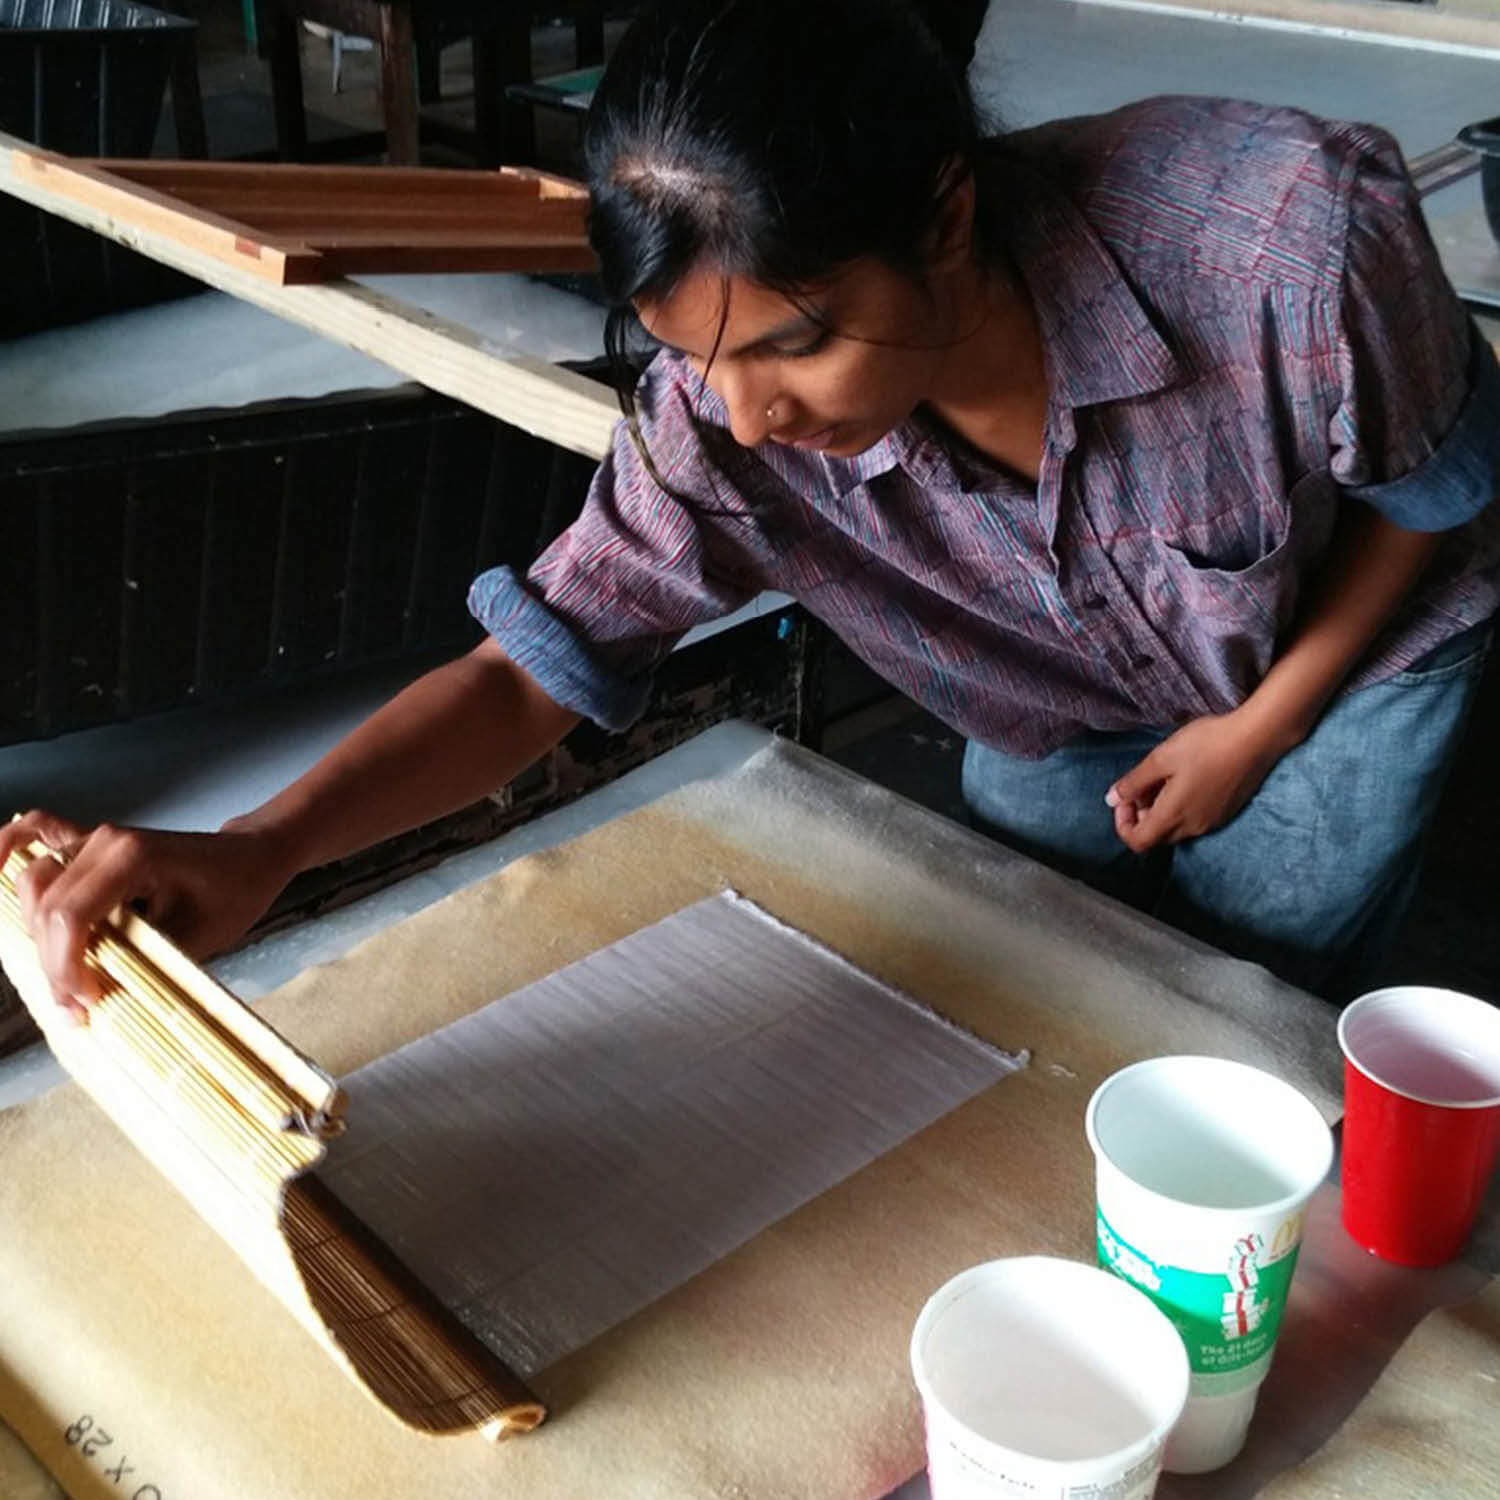 photo of Radha Pandey leaning over a desk while handling handmade paper